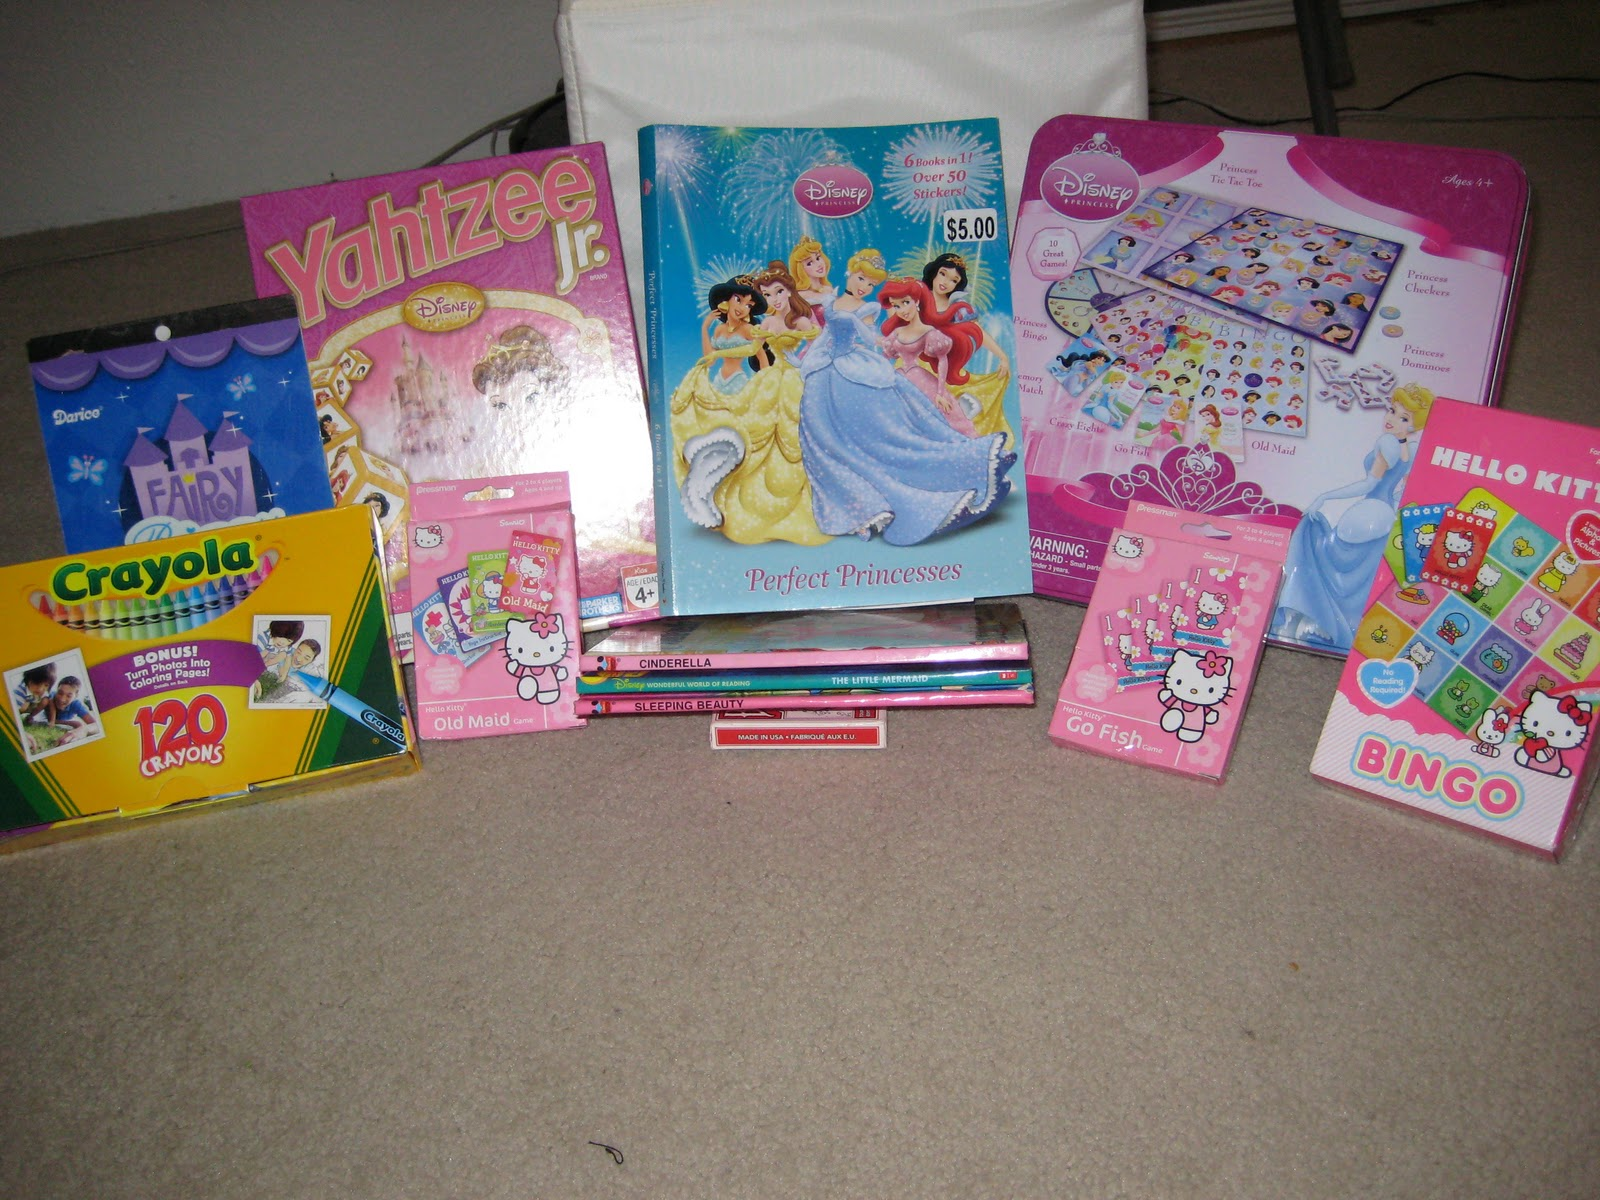 For Babysitting Girls Yahtzee Jr Princess 5 Target Coloring Book Walmart Disney 10 Game Kit 7 Stickers 1